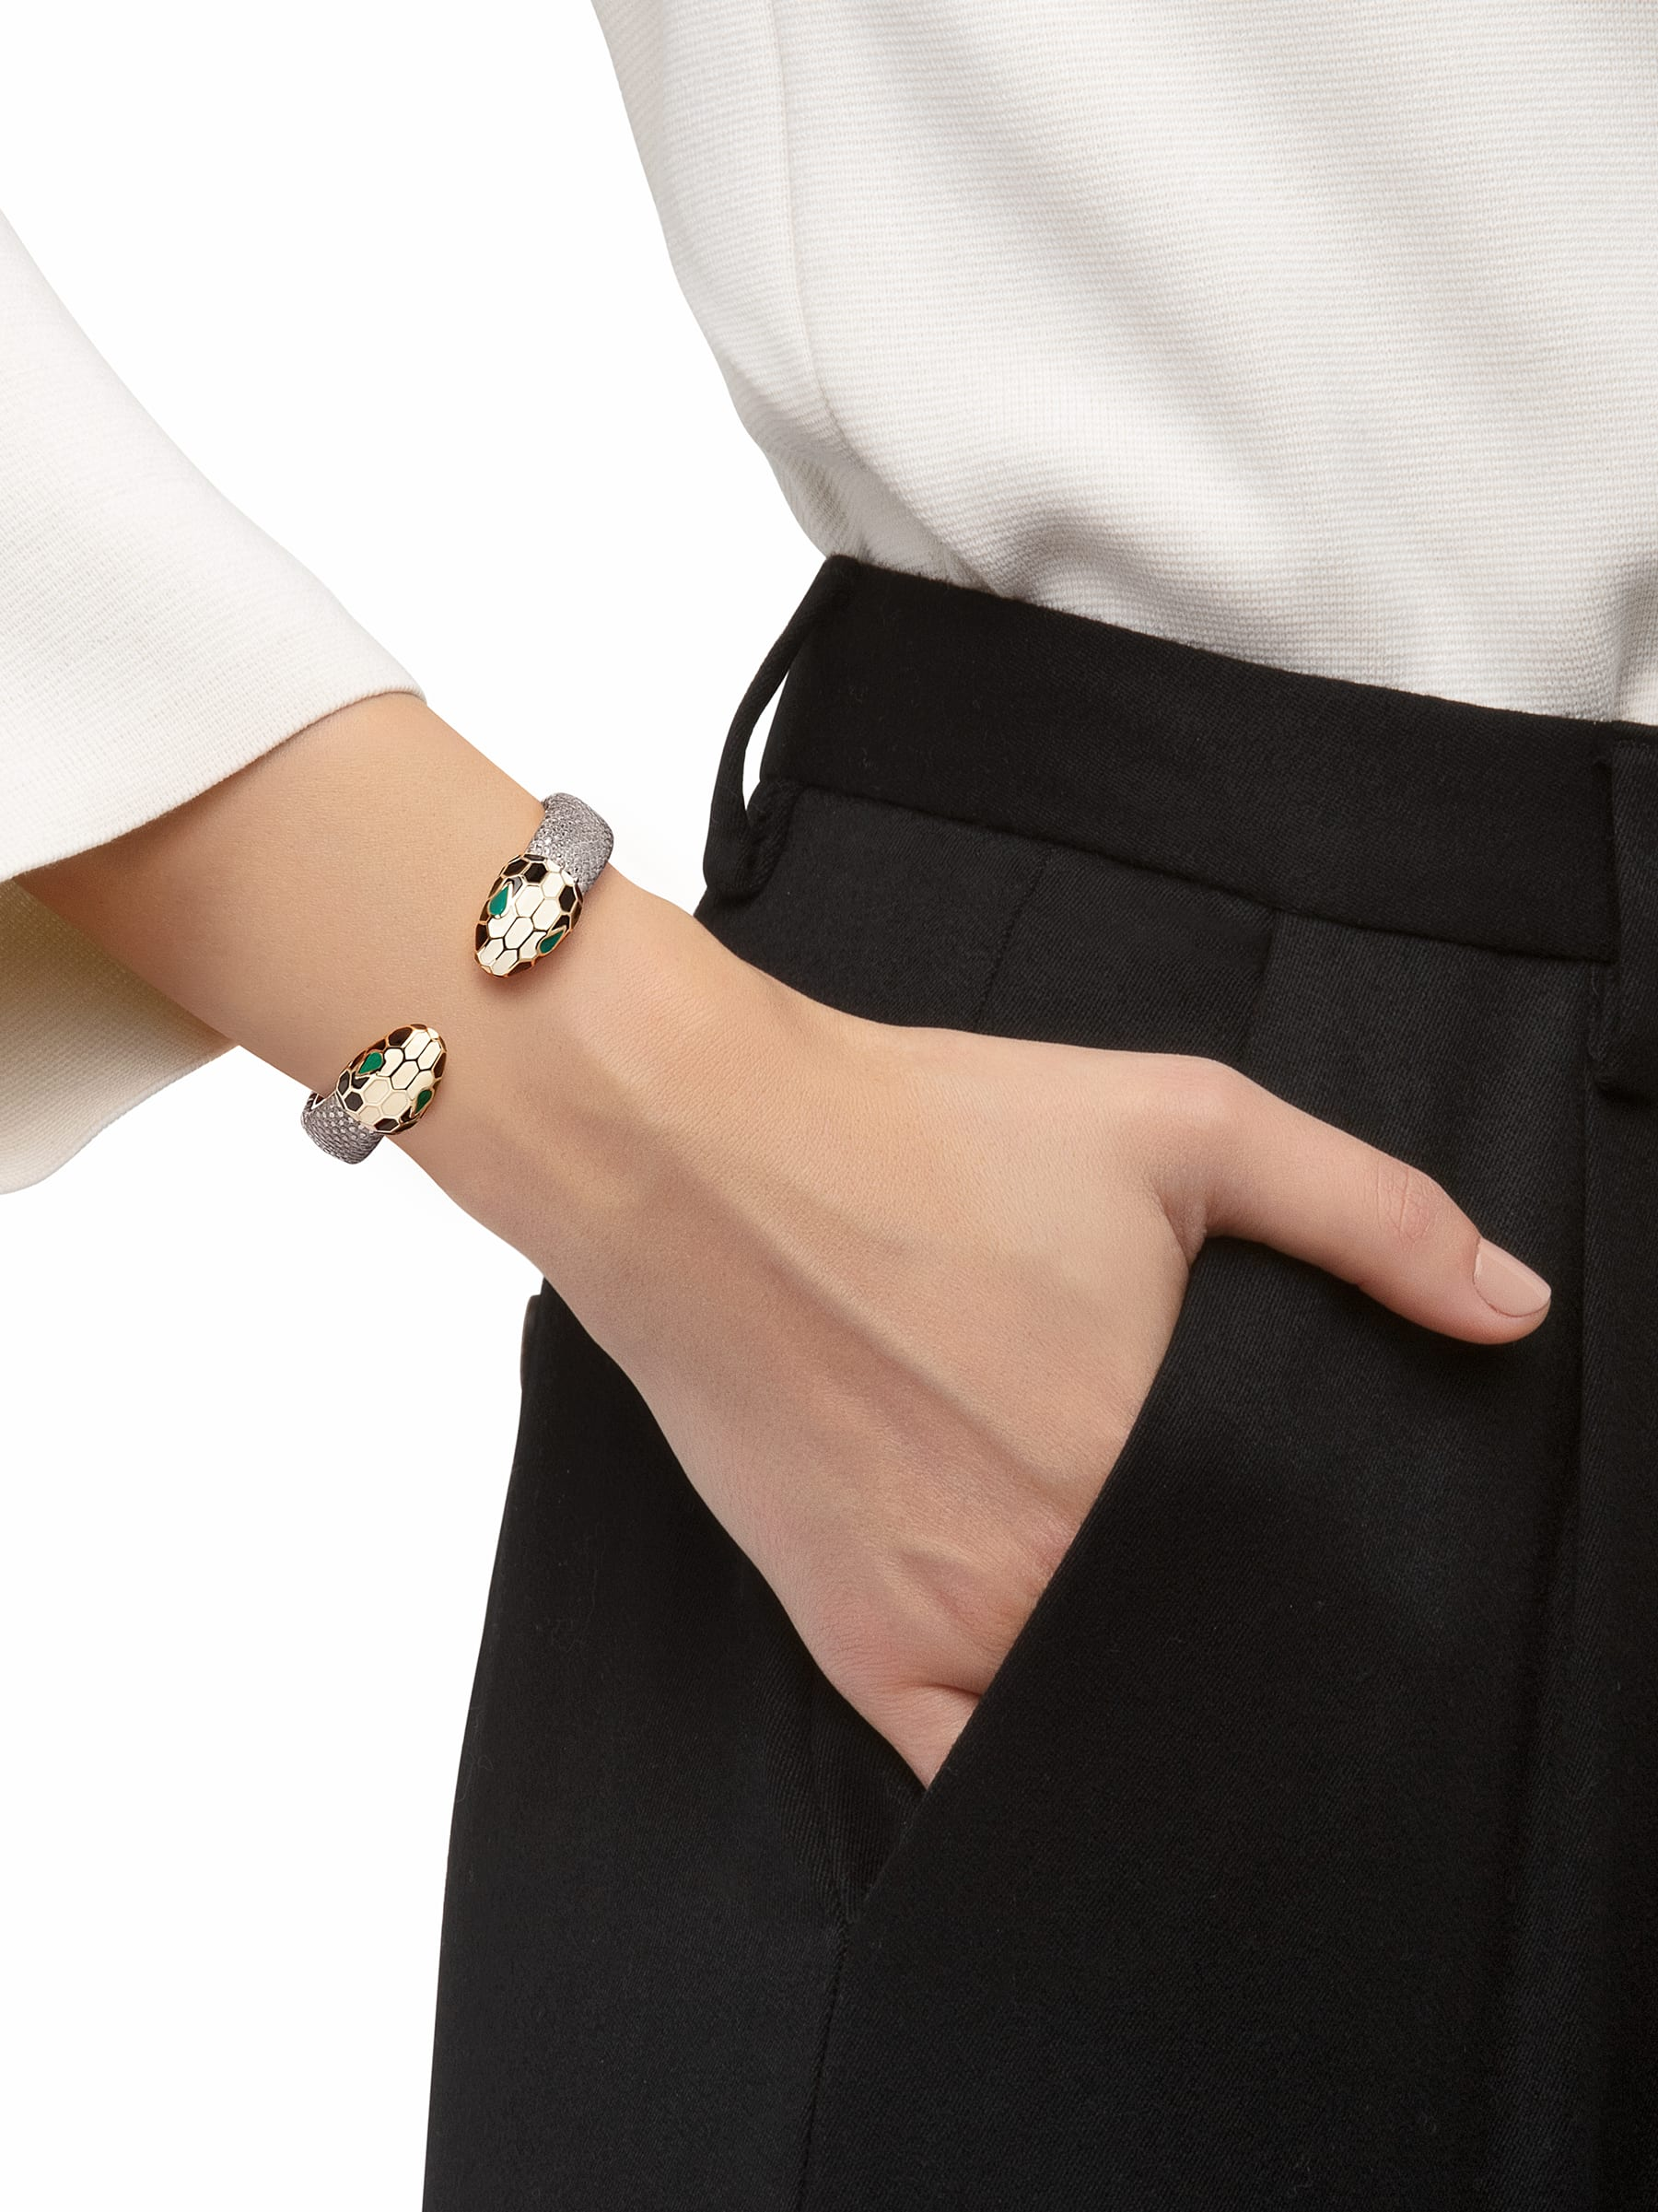 Bracelet in silver metallic karung skin with iconic contraire brass light gold plated Serpenti heads motif in black and white enamel, with green enamel eyes. 285643 image 2